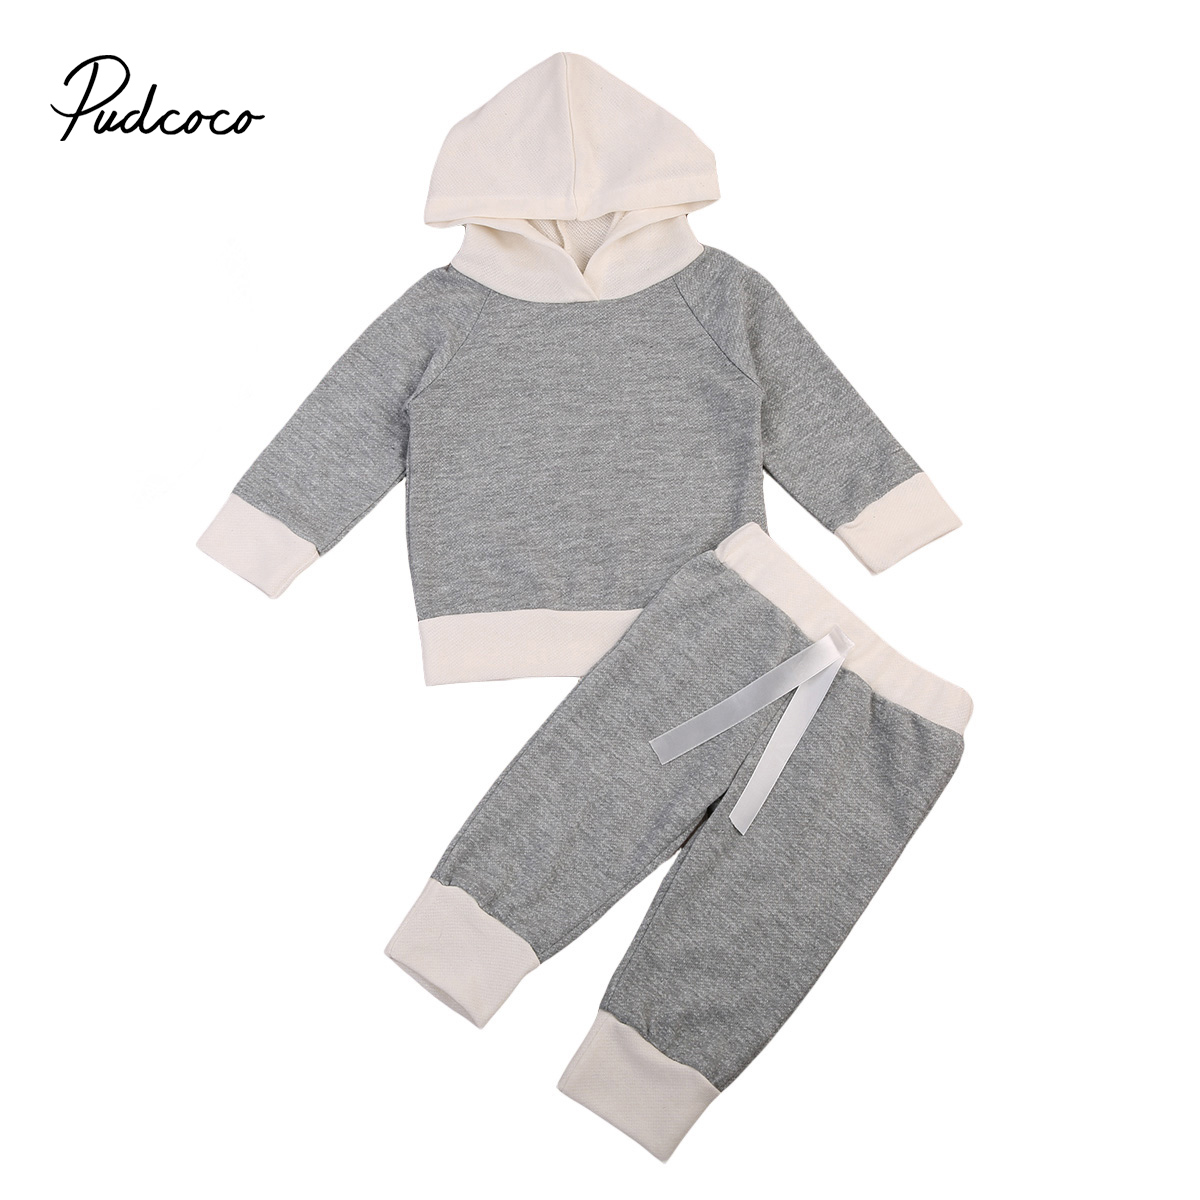 Kids Baby Toddler Boy Girl Winter Clothes Set Hoodie Long Sleeve T-shirt Tops Pants Leggings Outfits Infant Cotton Clothing 2pcs children outfit clothes kids baby girl off shoulder cotton ruffled sleeve tops striped t shirt blue denim jeans sunsuit set